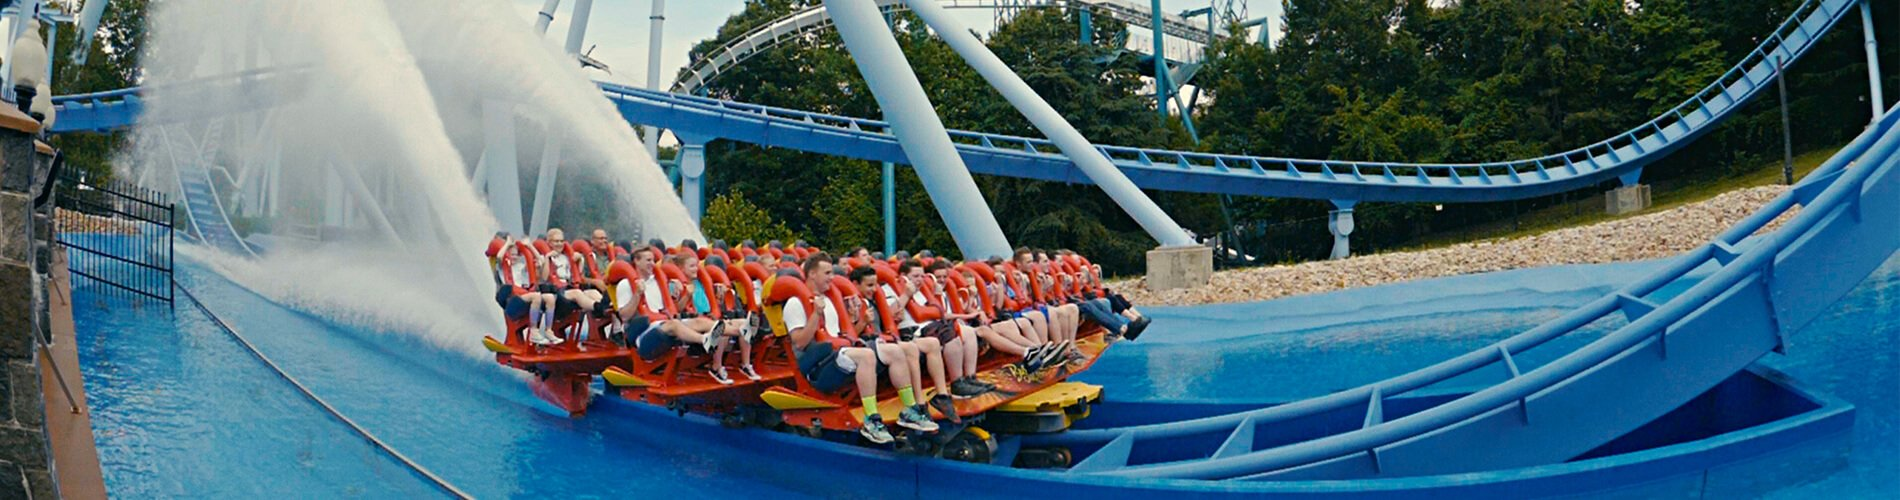 People riding Griffon roller coaster over water